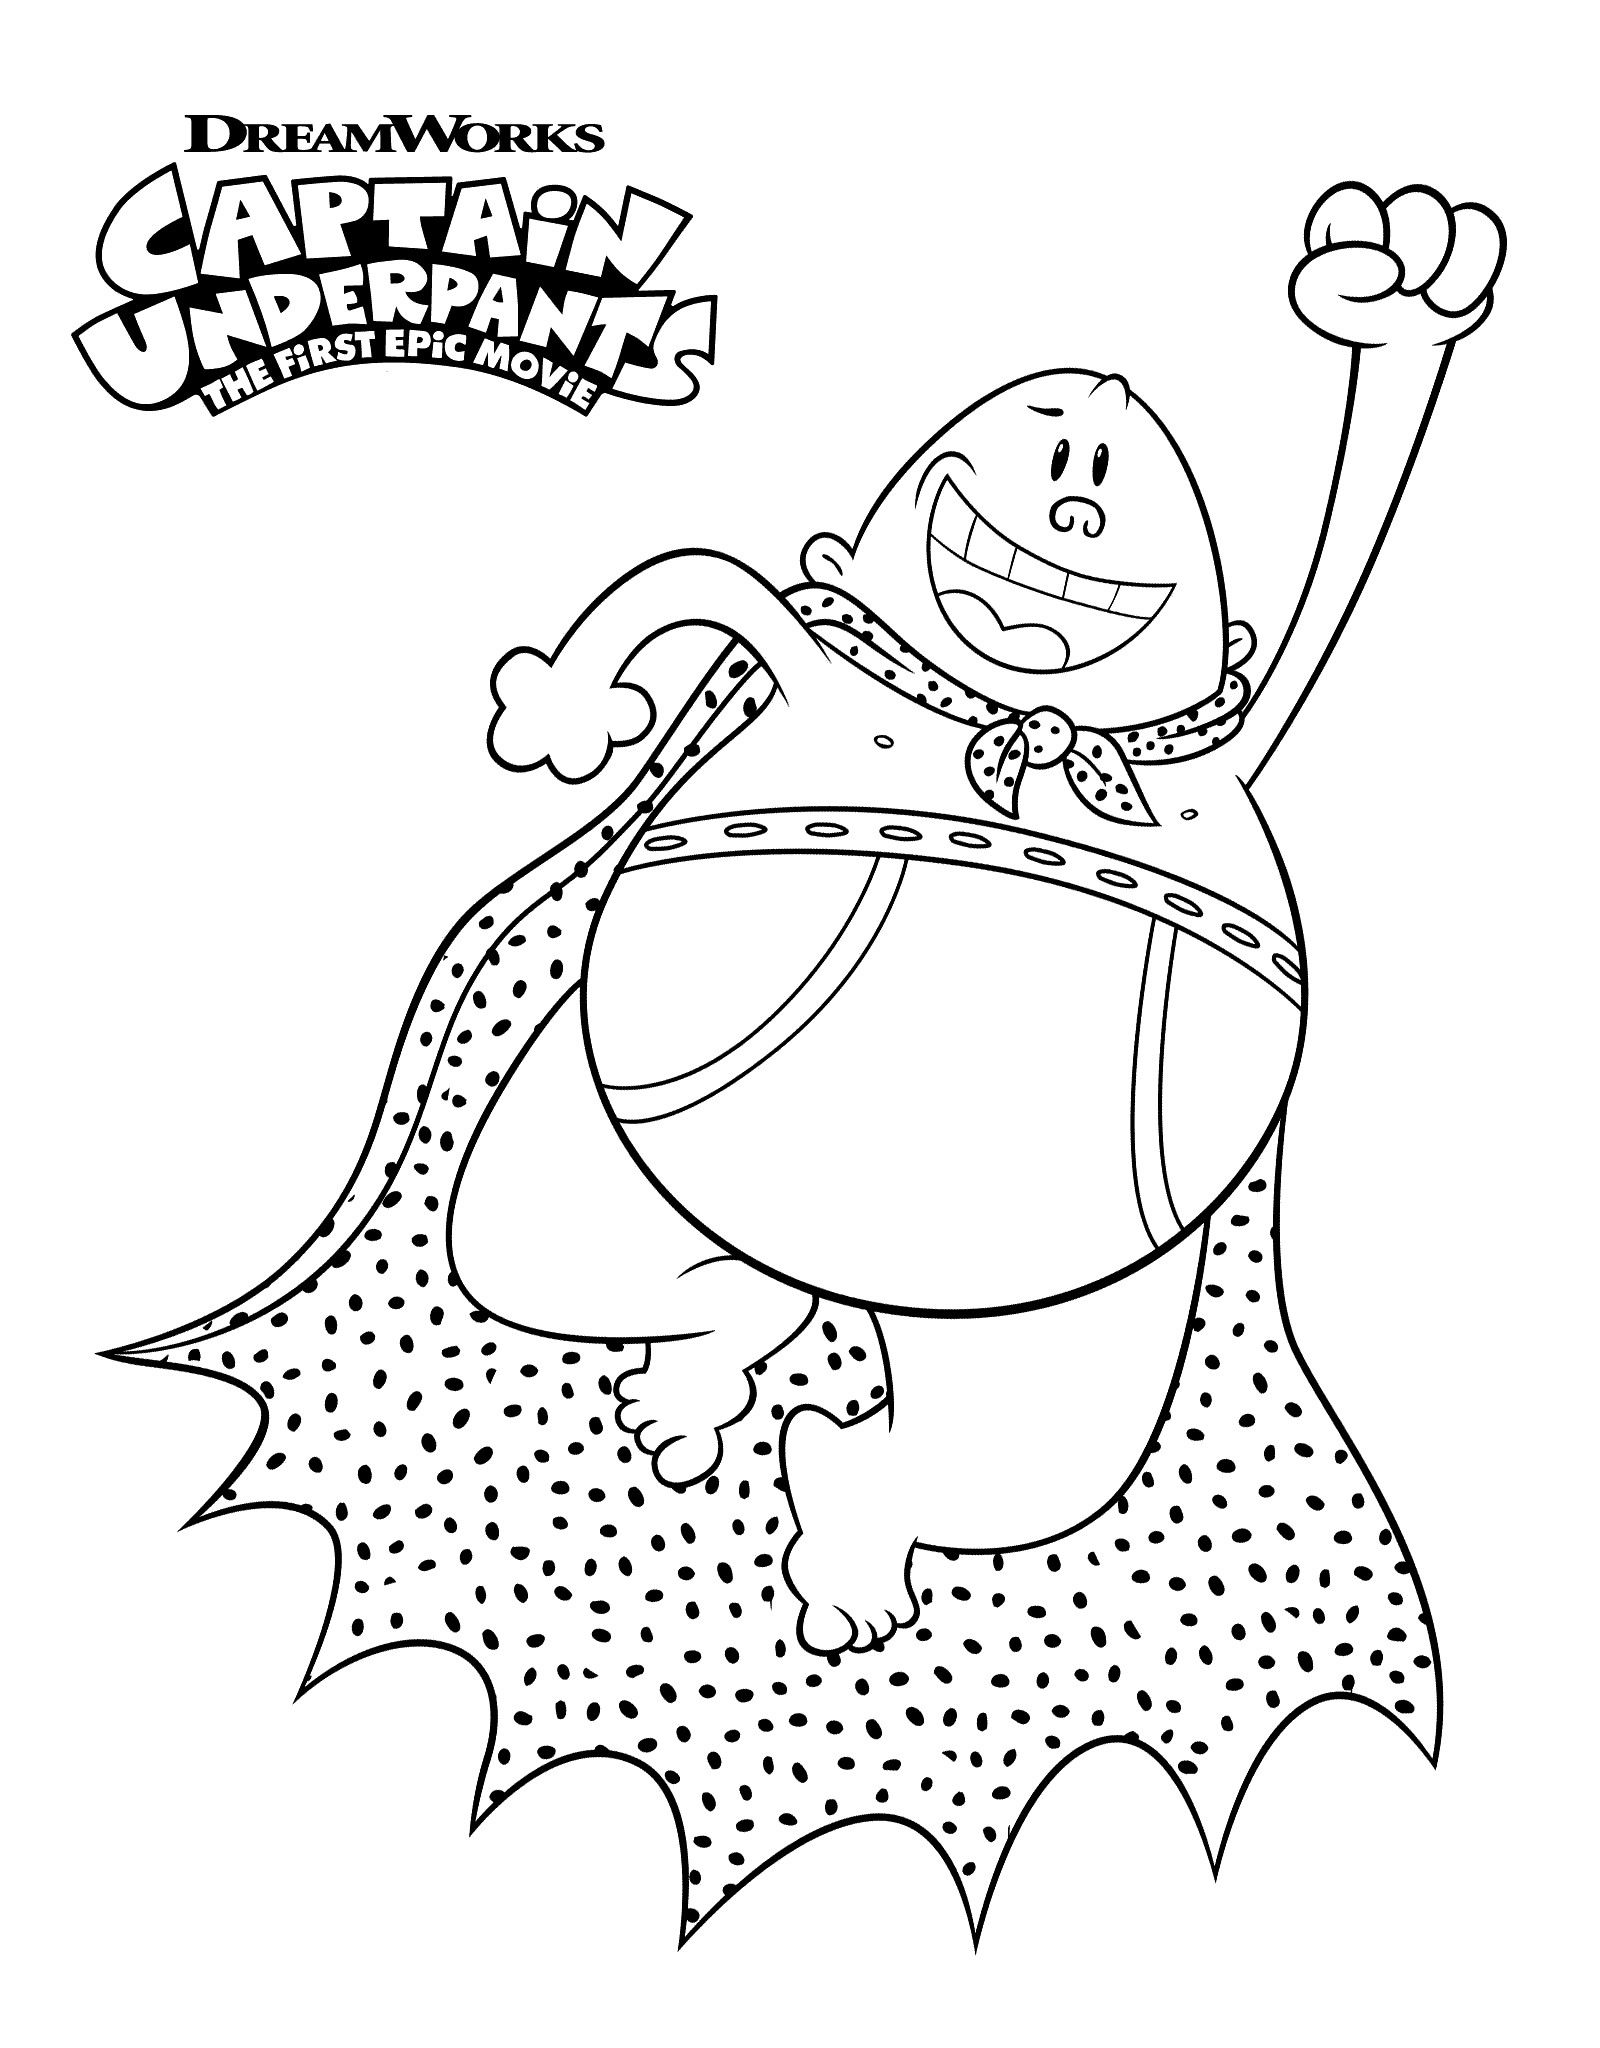 Captain Underpants Coloring Pages Luxury Free Printable Captain Underpants Coloring Pages Captain Underpants Cartoon Coloring Pages Monster Coloring Pages